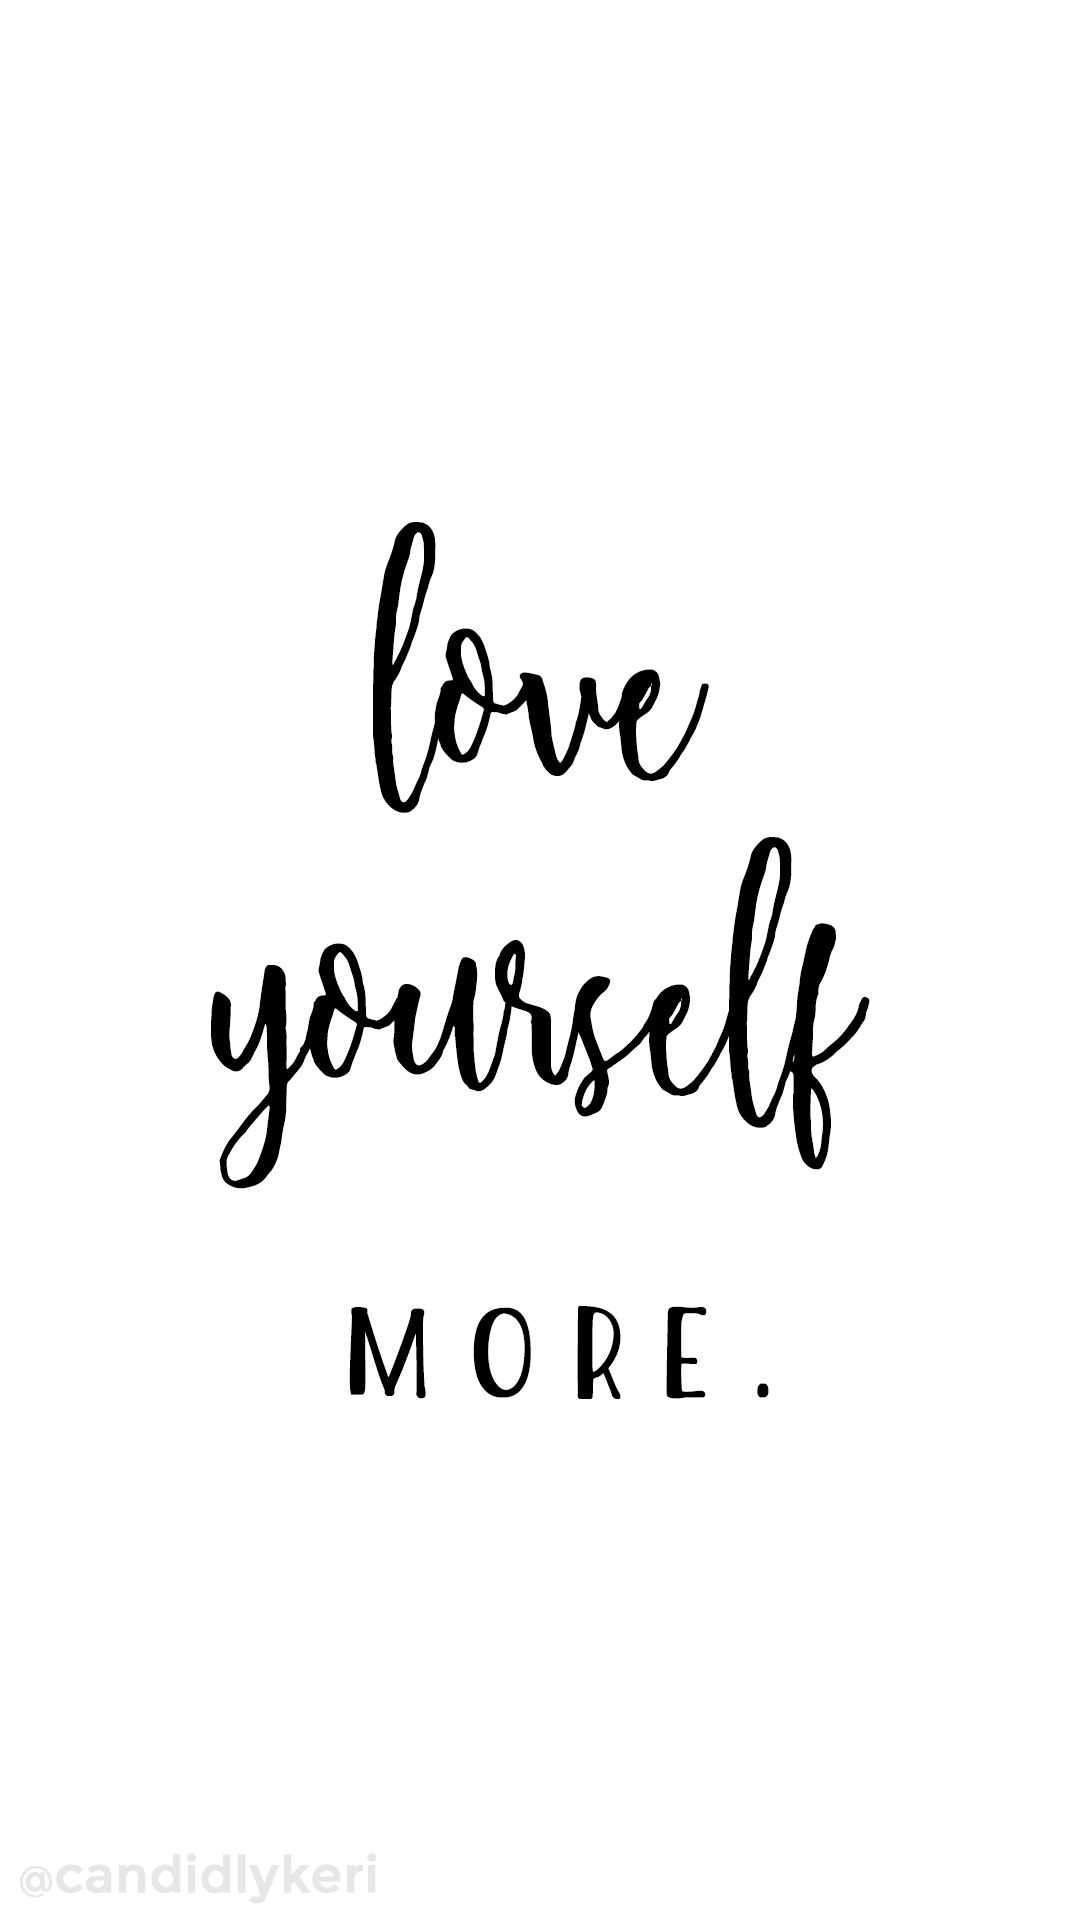 Love Yourself More Quote Inspirational Self Love Wallpaper